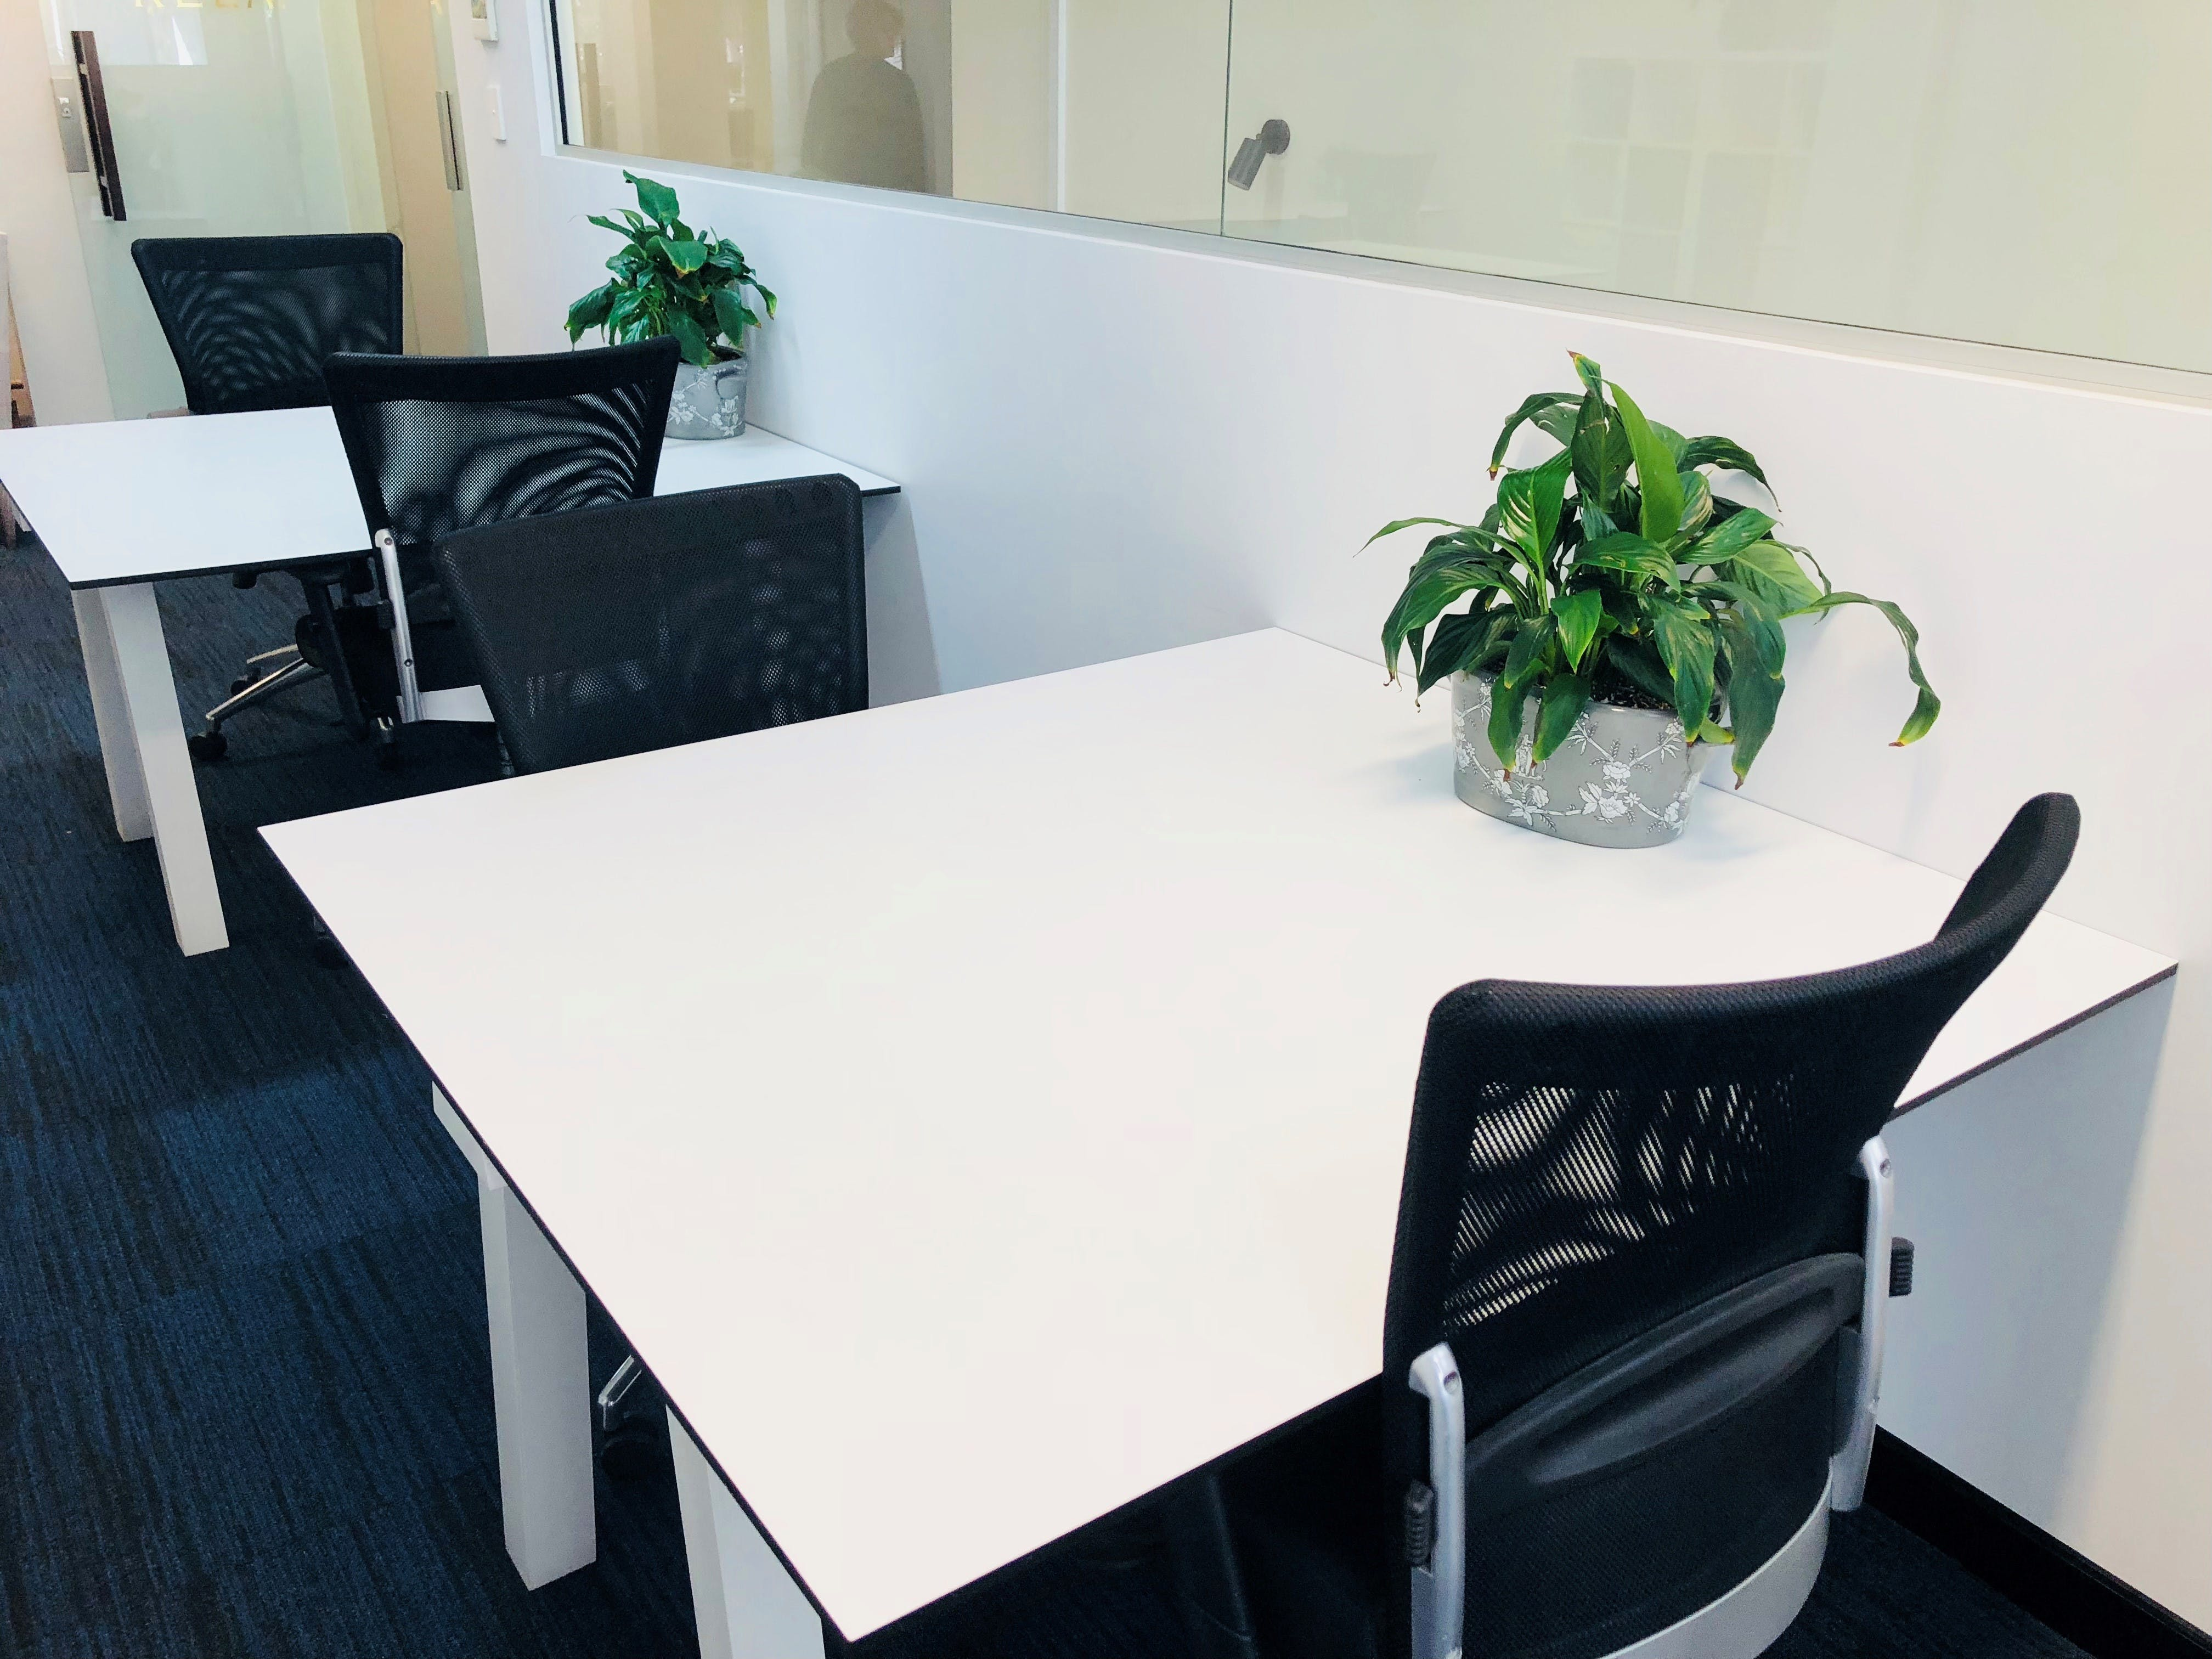 Hot desk at Bay Street Offices, image 1